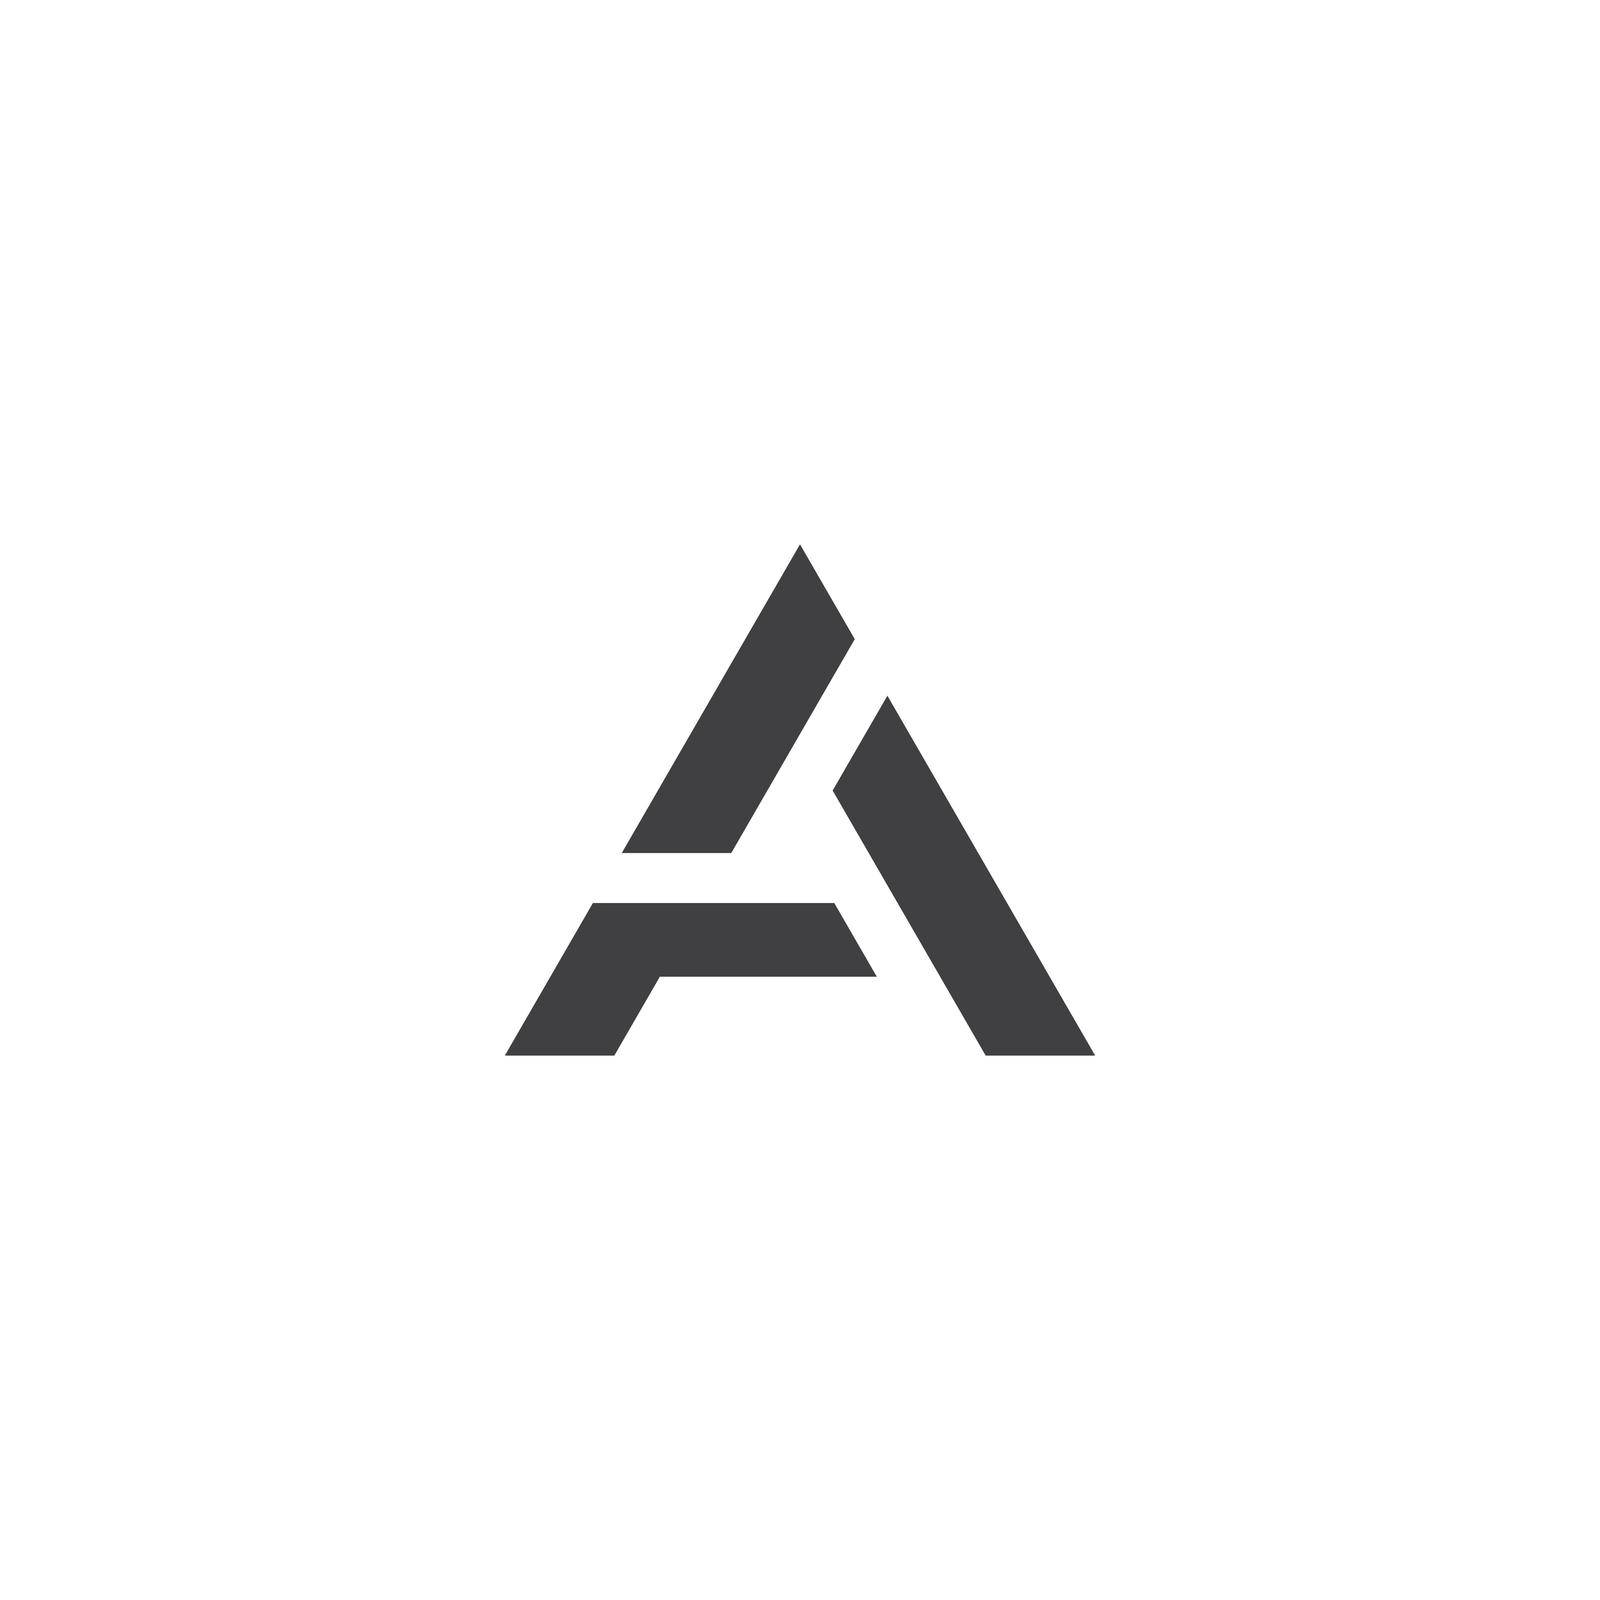 A initial letter logo template